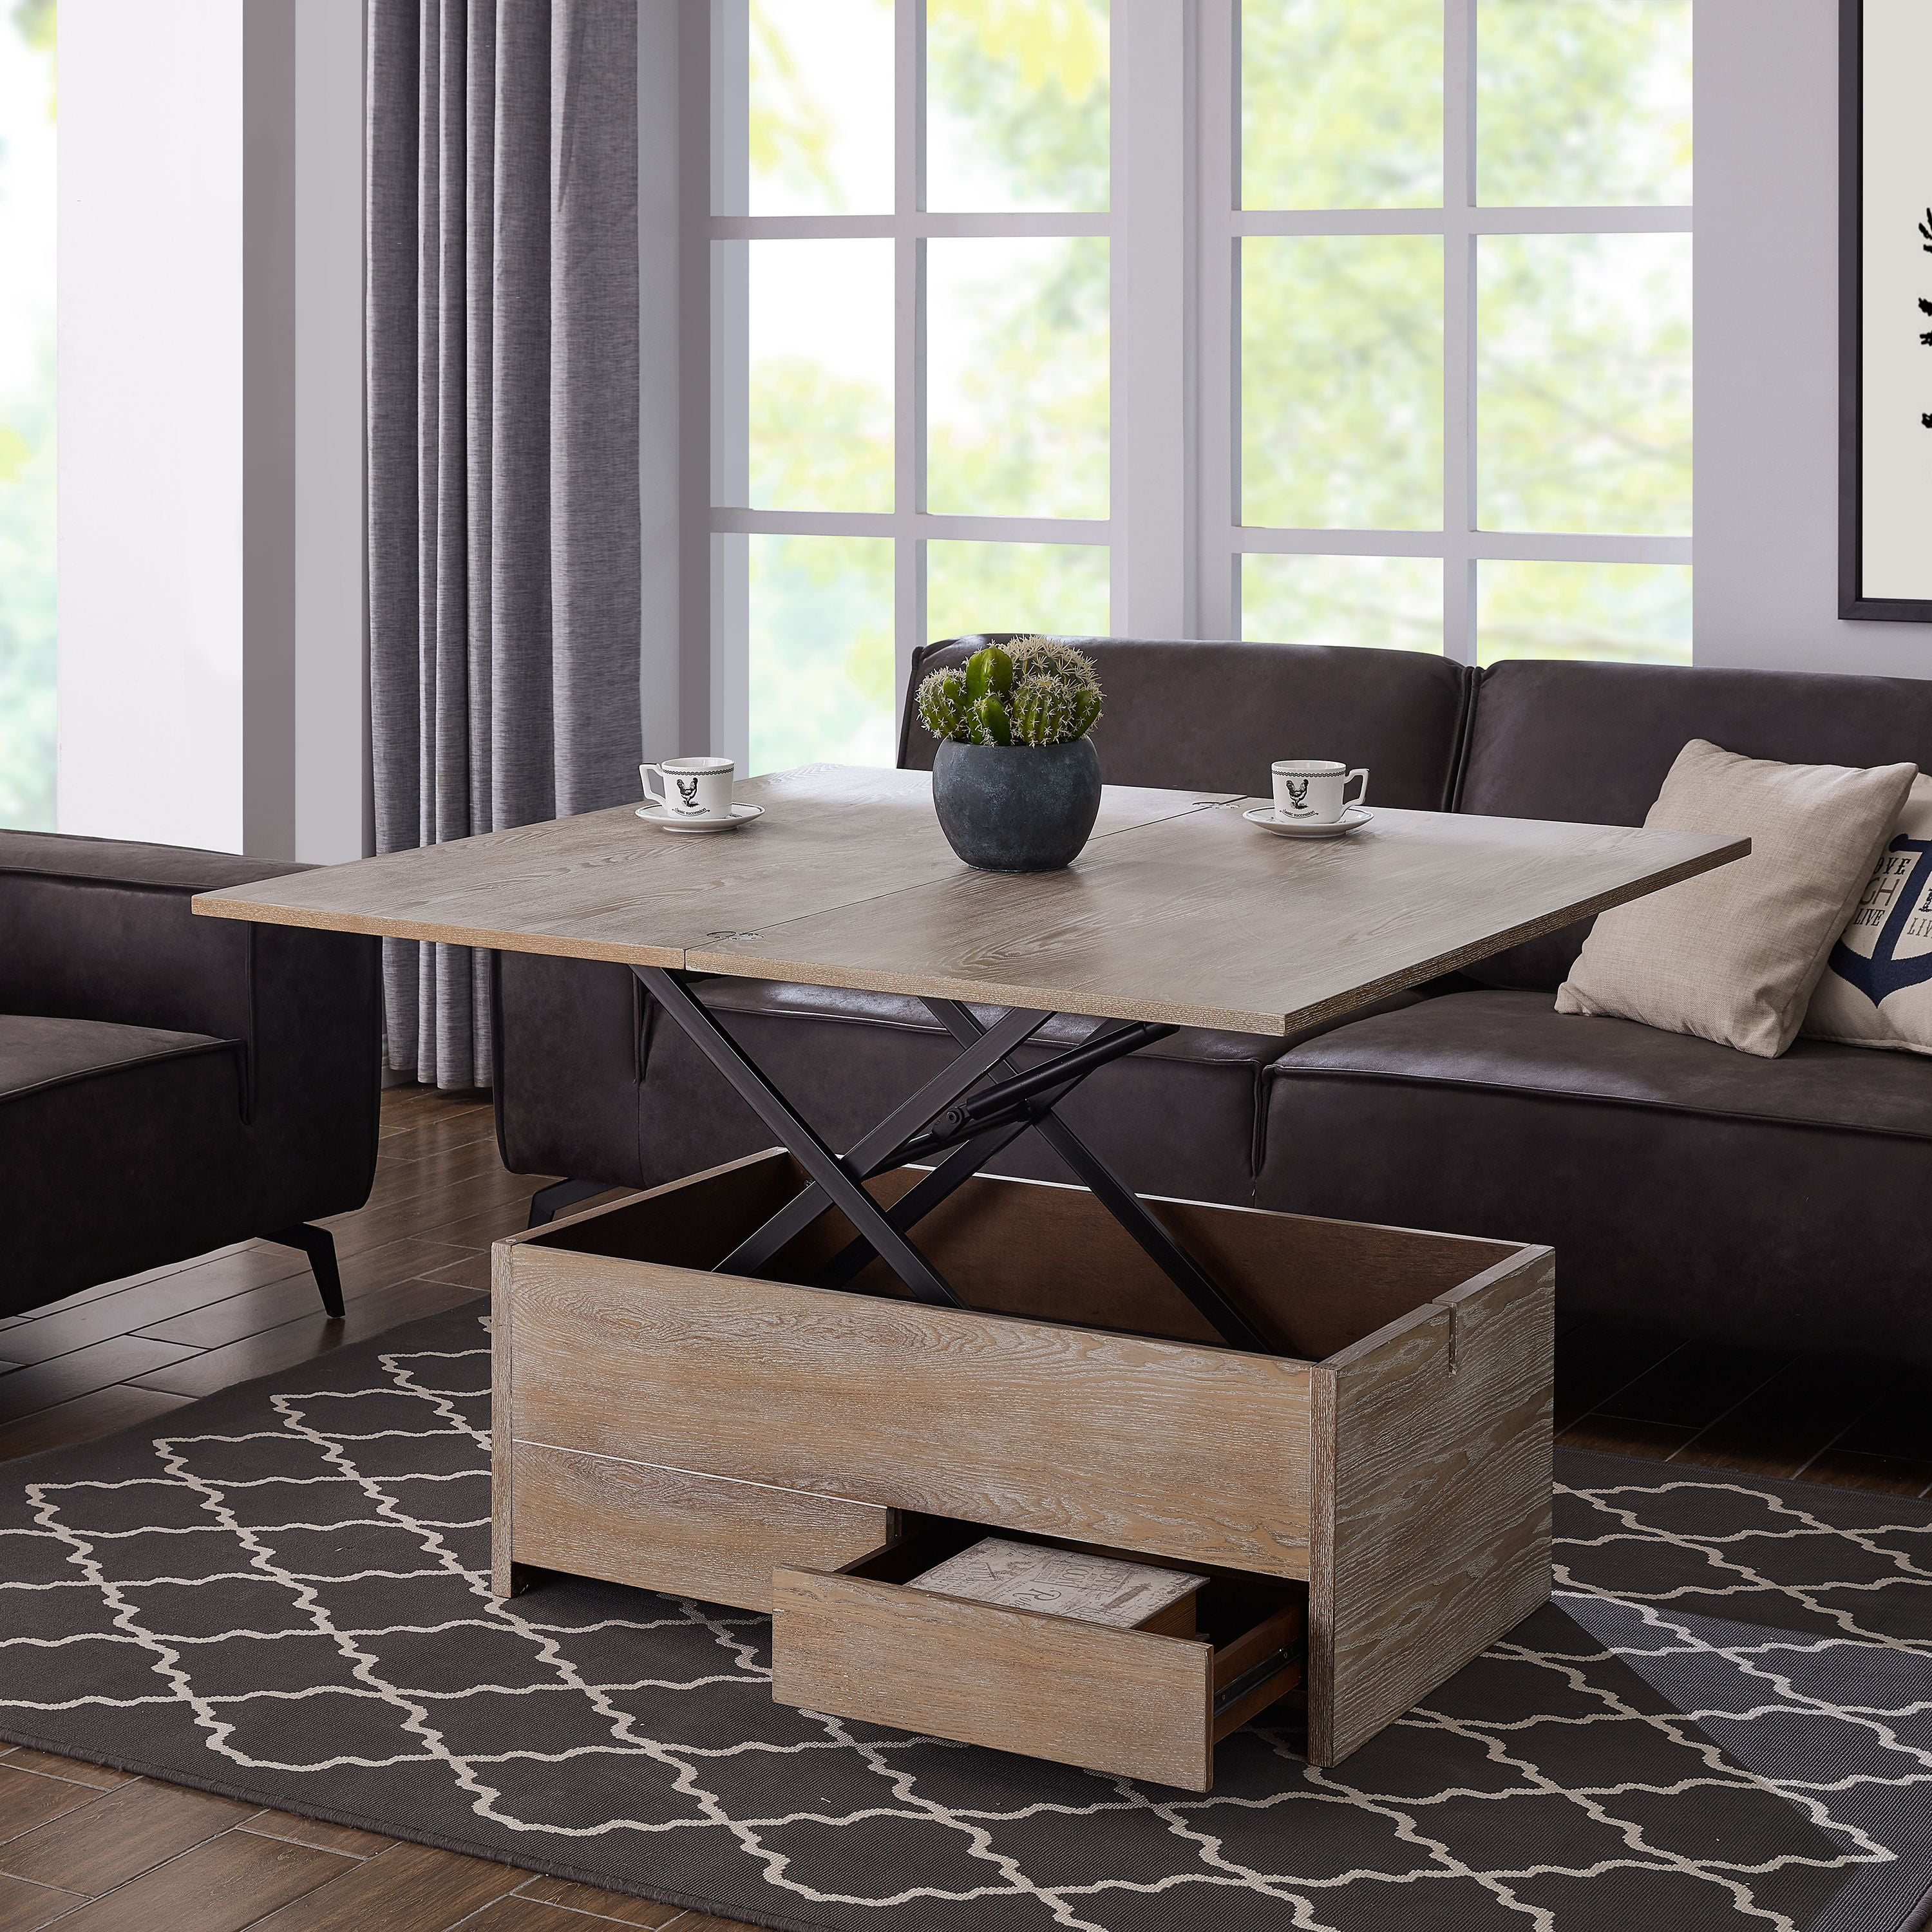 acor convertible storage coffee table to dining table walmart com